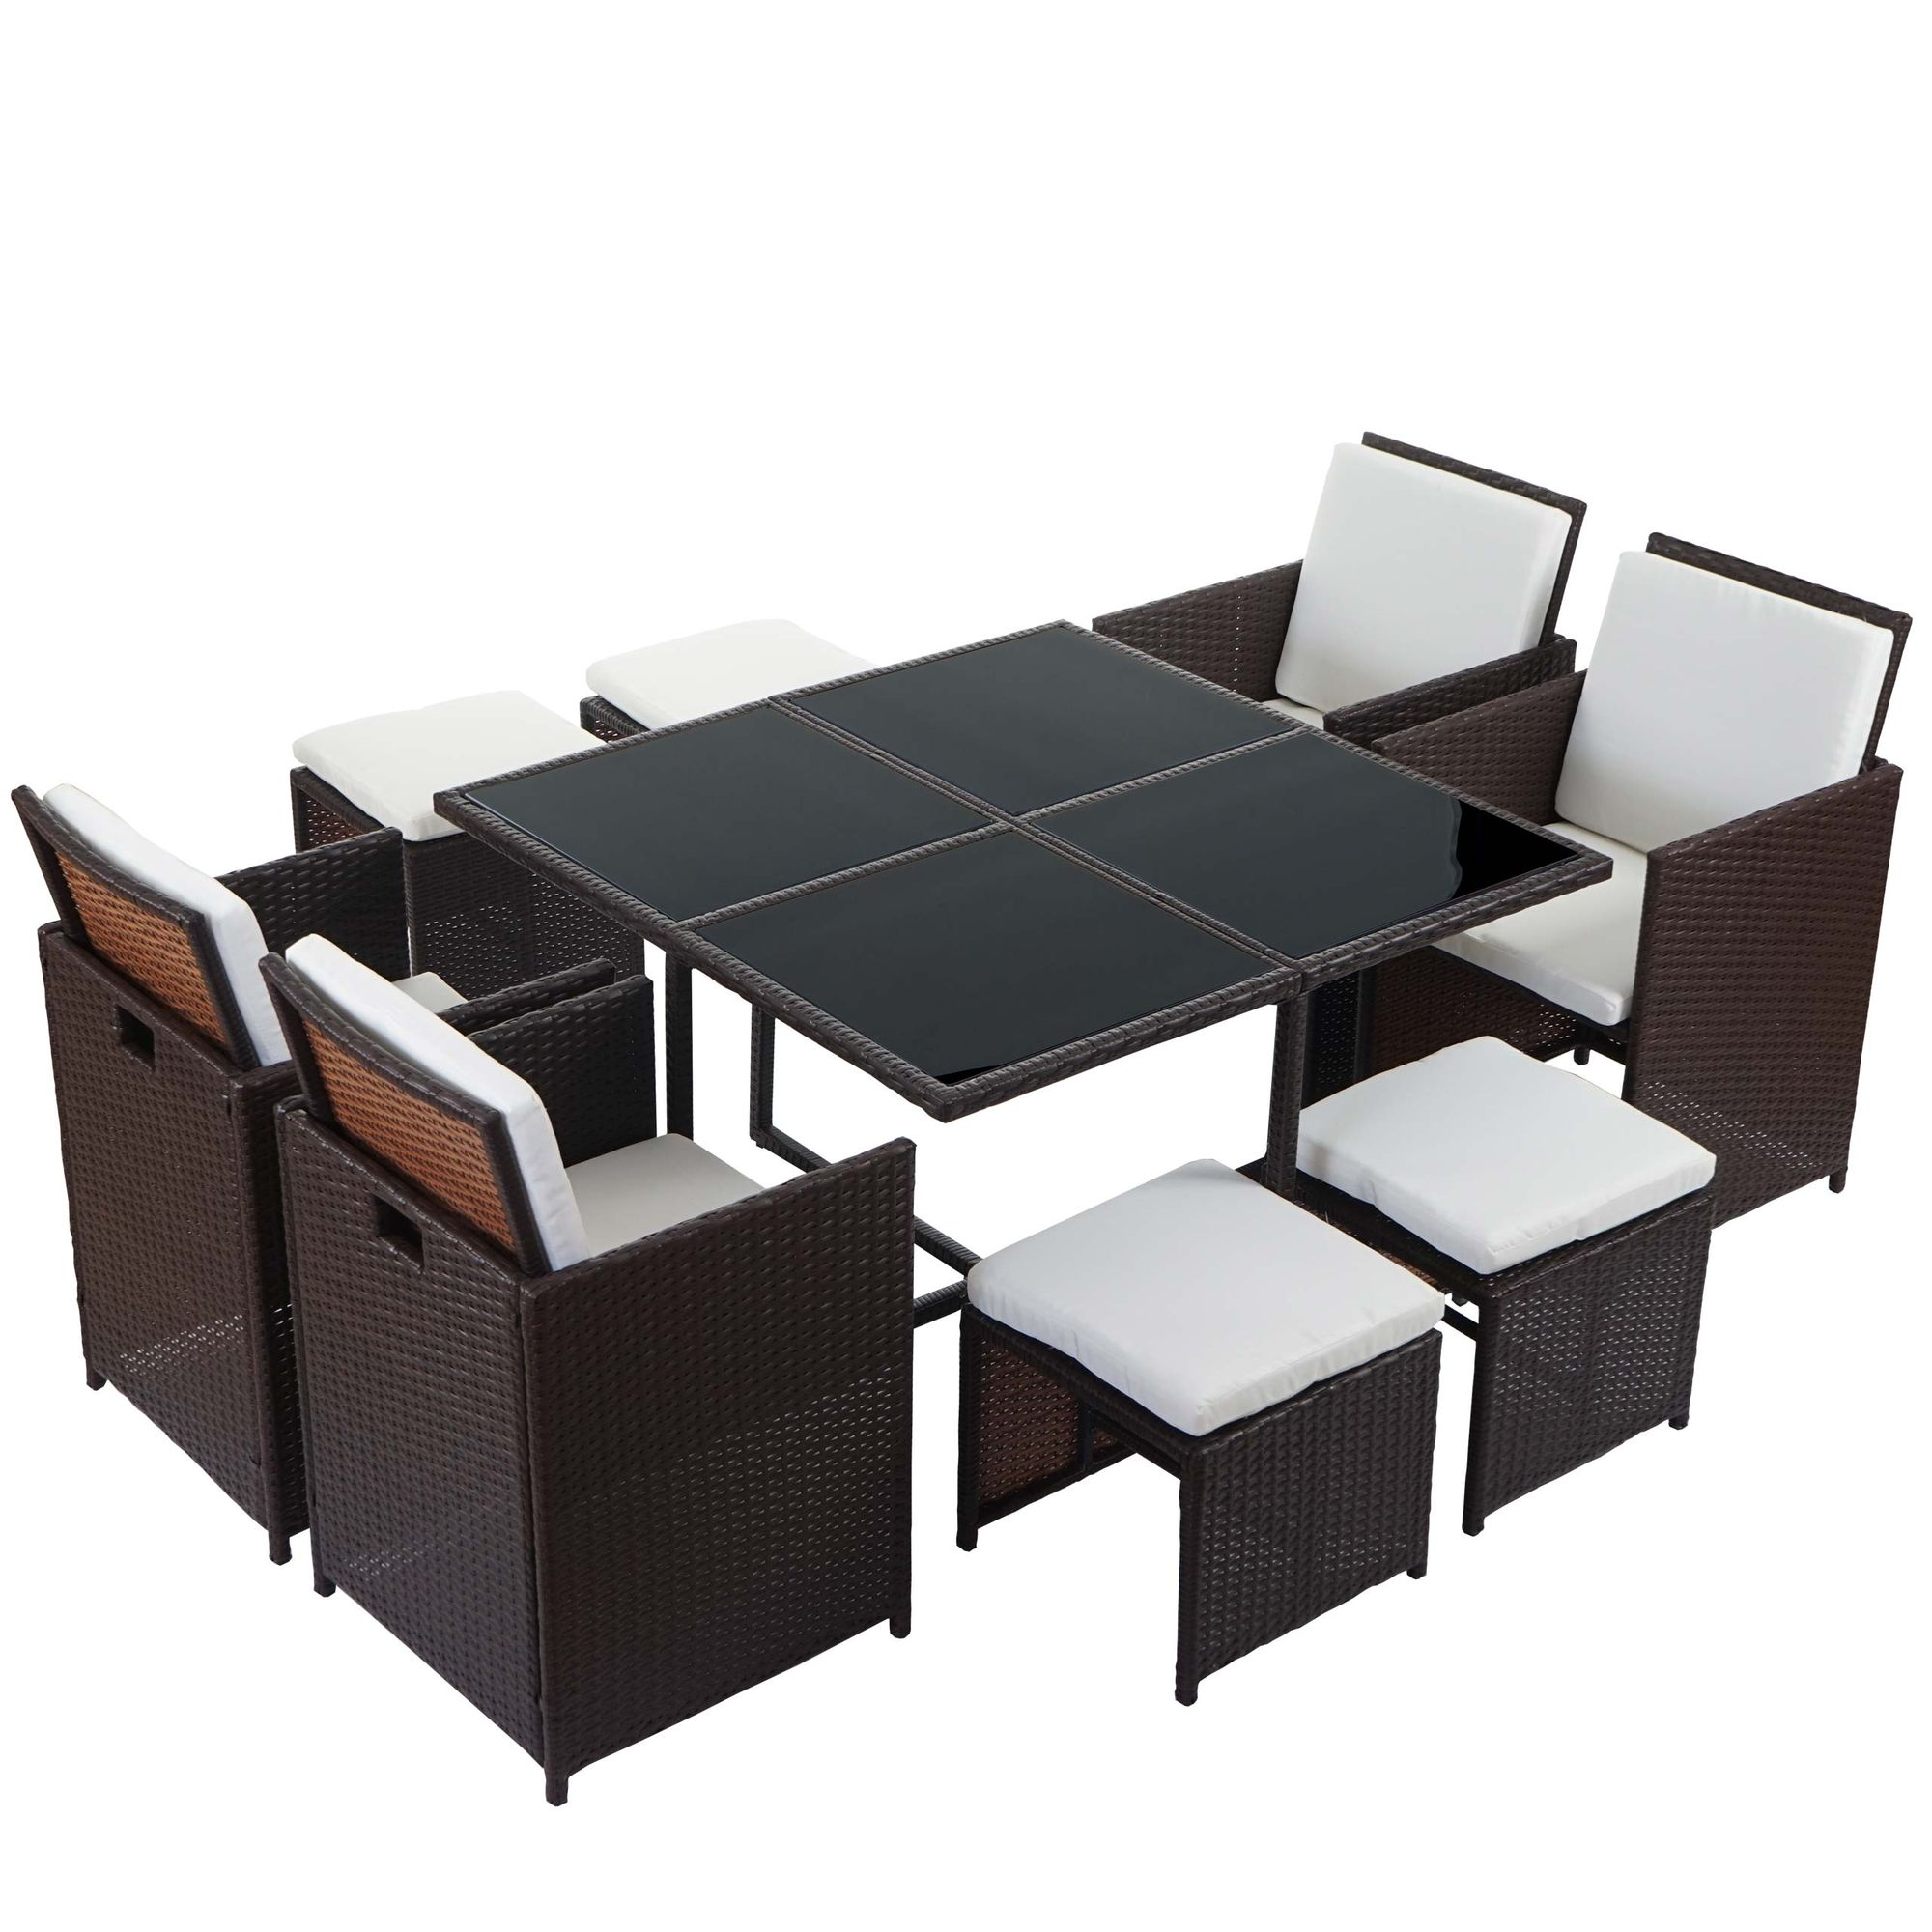 poly rattan garten garnitur lounge set sitzgruppe 4 st hle braun kissen creme garten. Black Bedroom Furniture Sets. Home Design Ideas